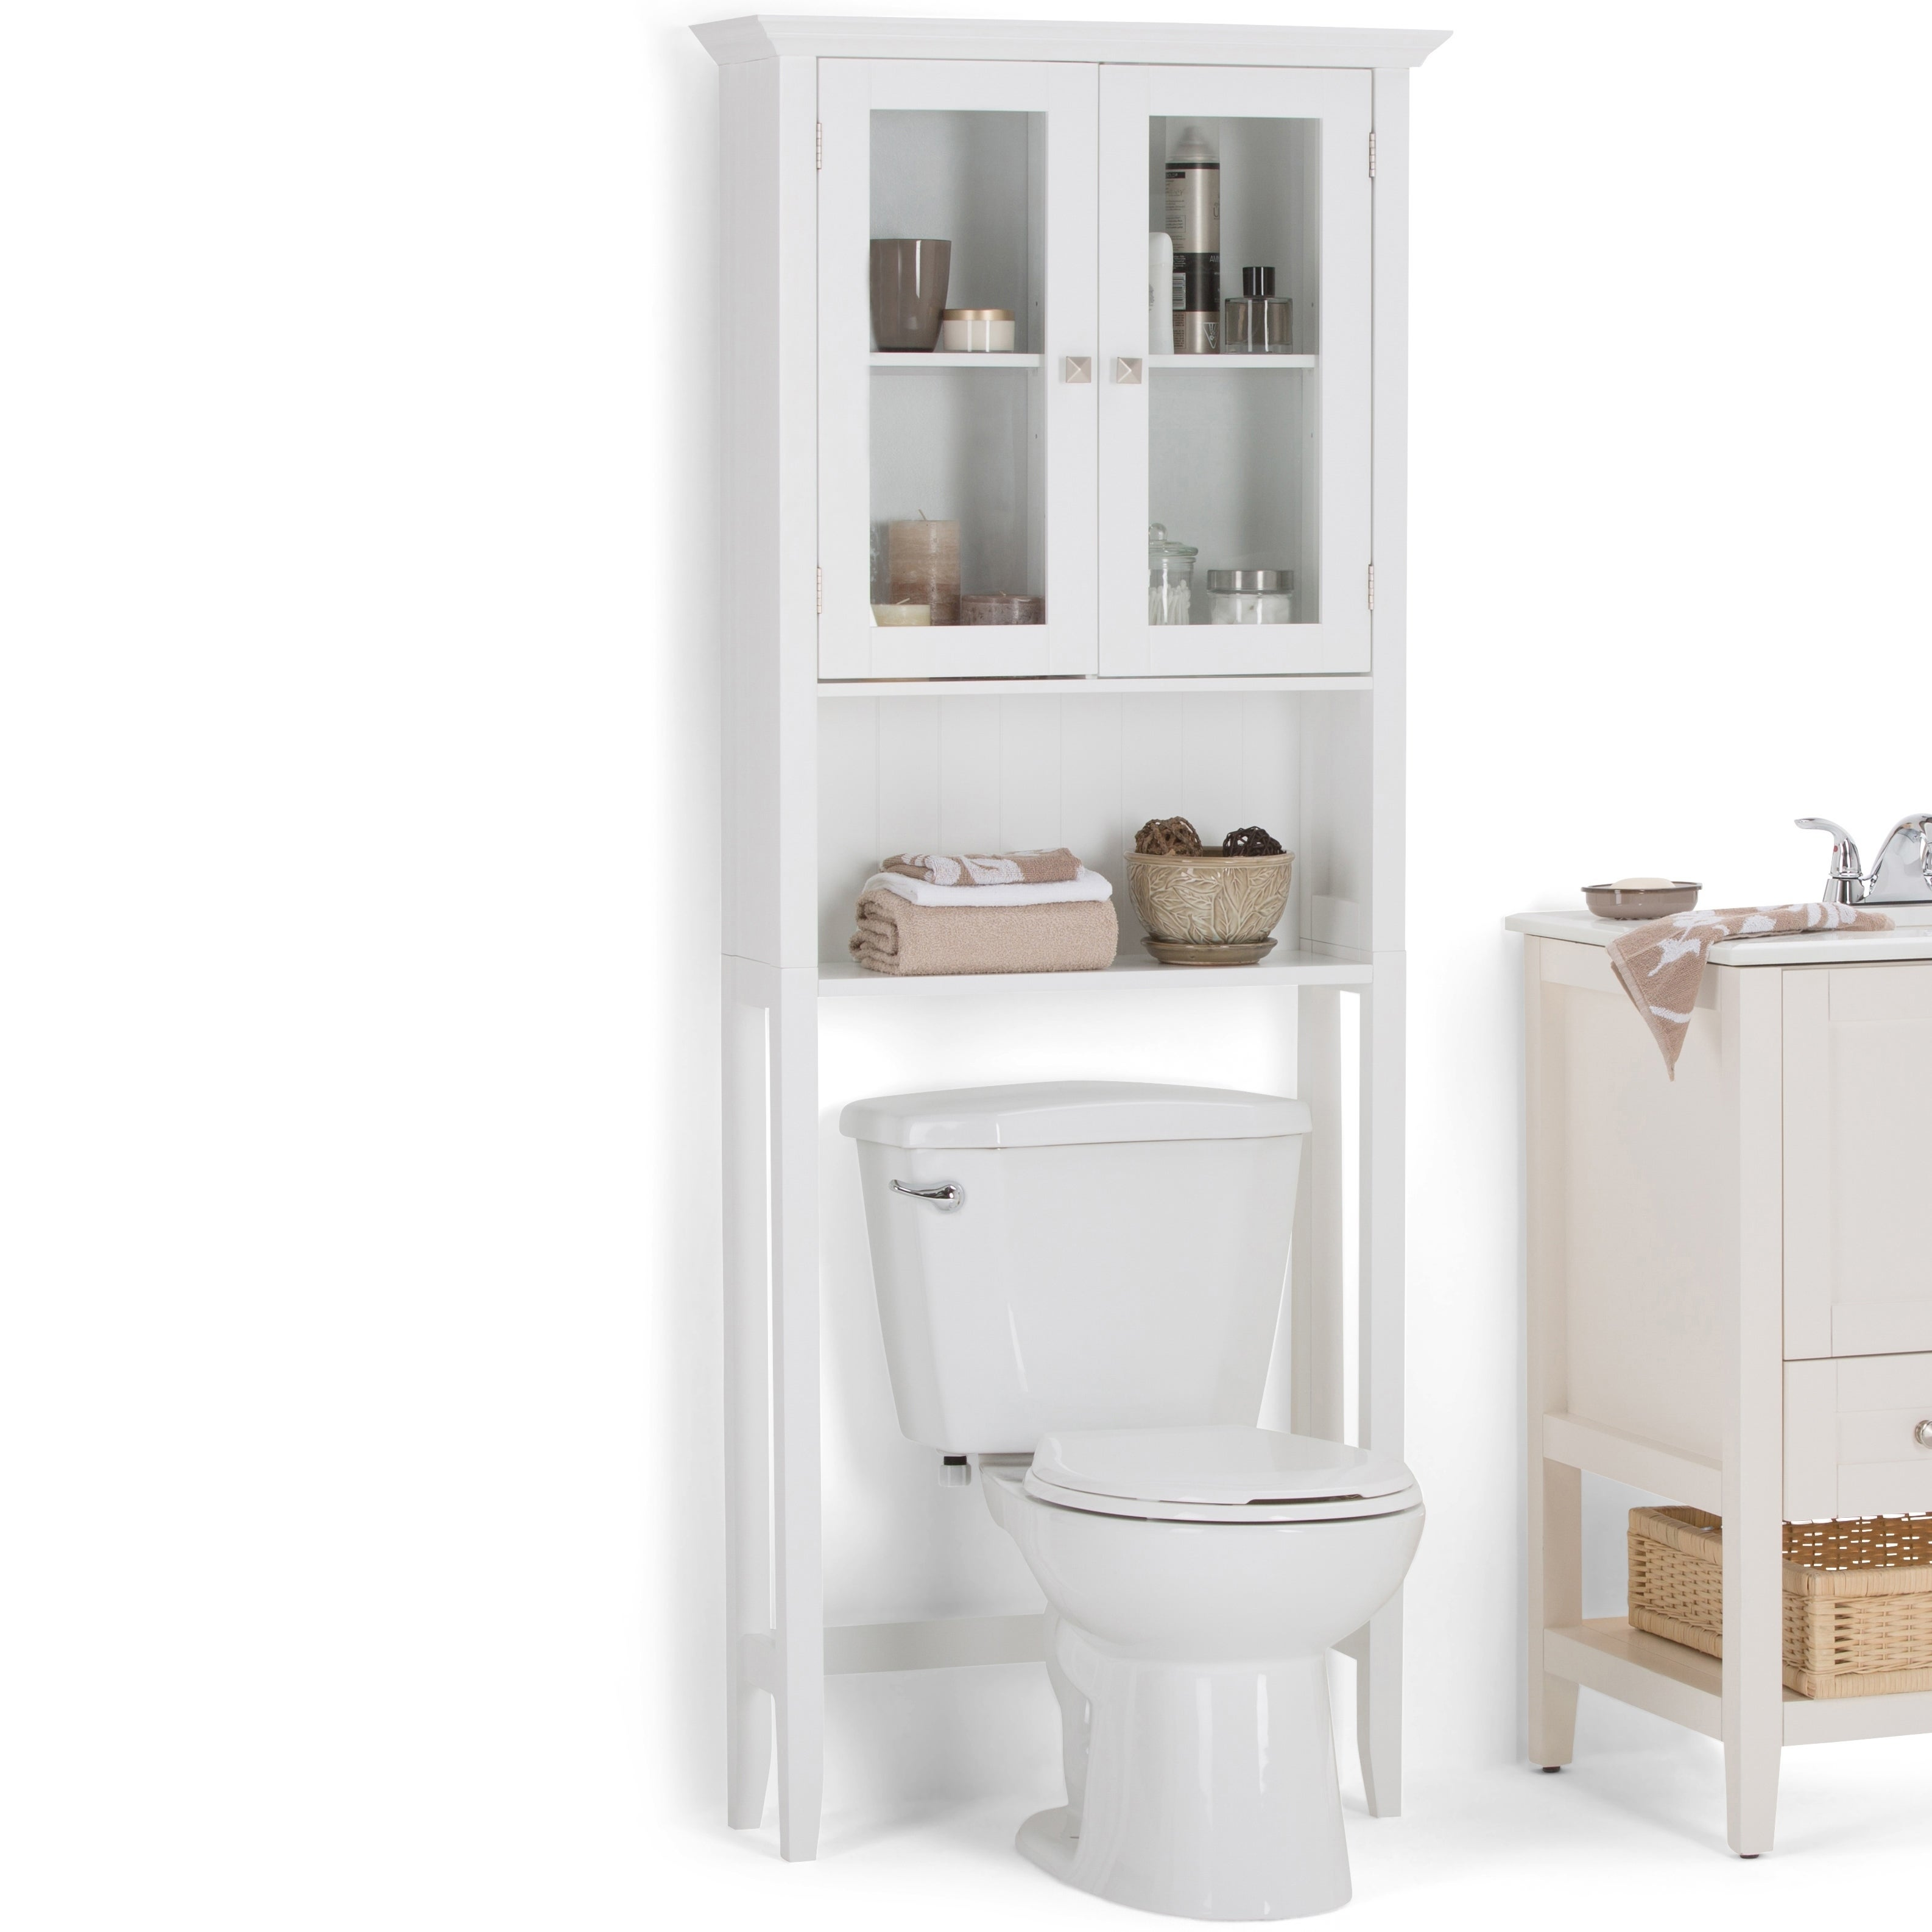 Buy Over 34 Inches Bathroom Cabinets & Storage Online at Overstock ...